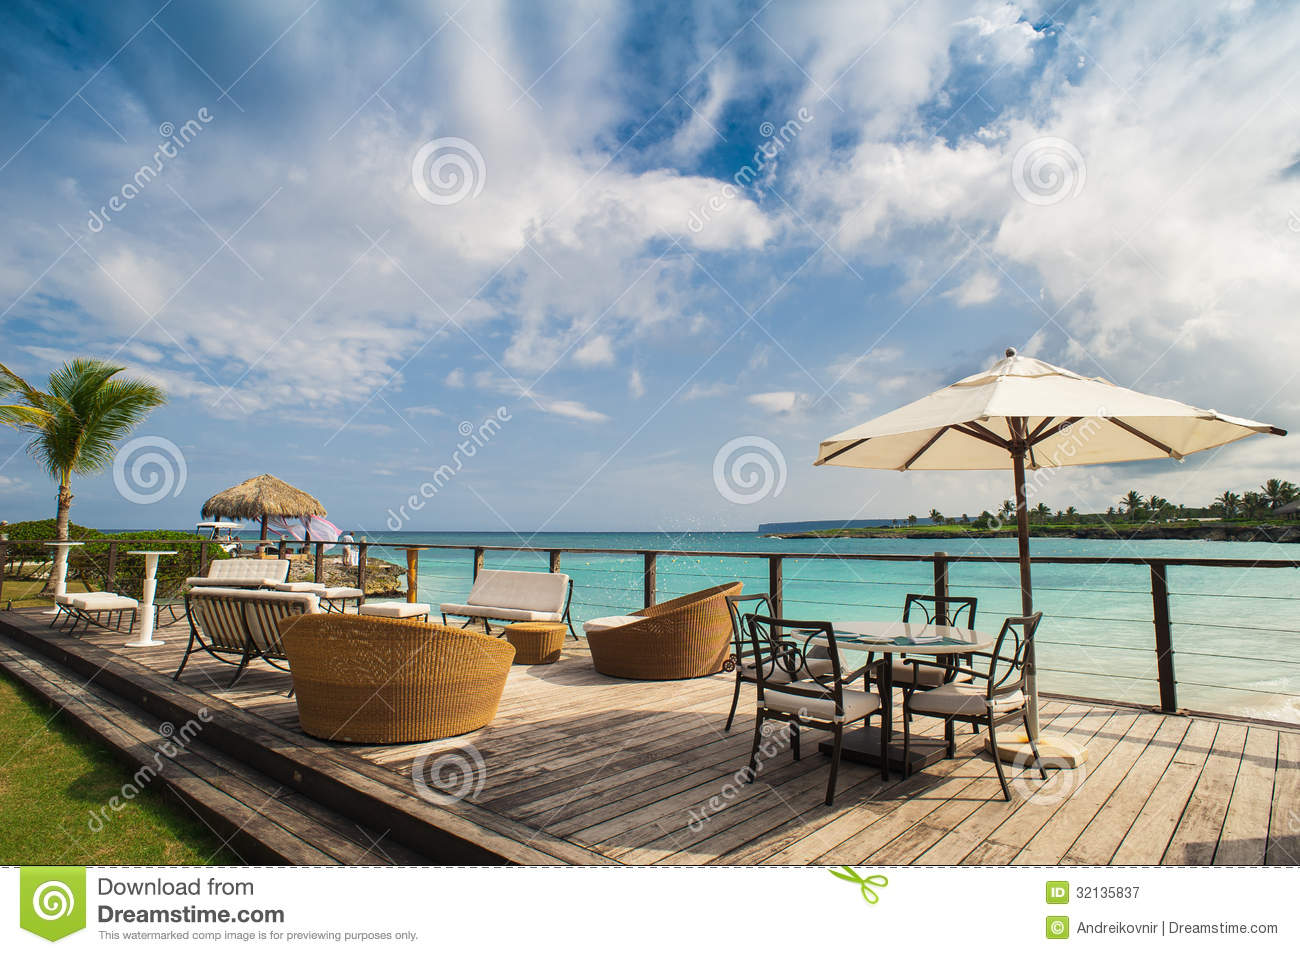 Outdoor Restaurant At The Beach Cafe On The Beach Ocean  : outdoor restaurant beach cafe beach ocean sky table setting tropical beach restaurant dominican republic 32135837 from www.dreamstime.com size 1300 x 955 jpeg 185kB